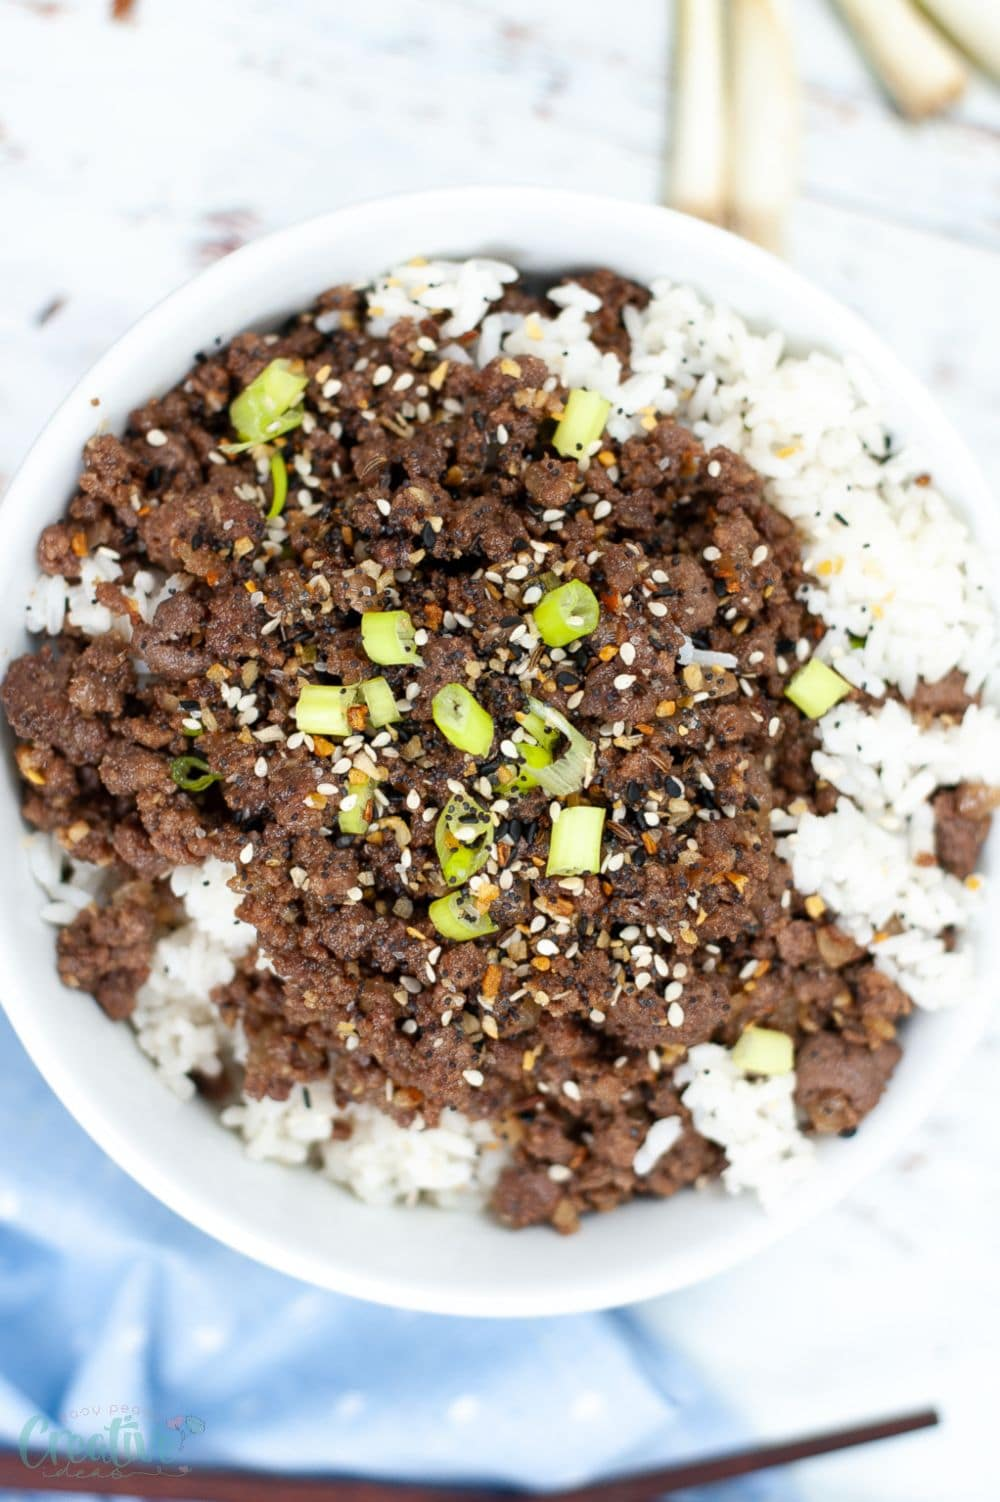 Image of Instant pot Korean ground beef served in a white bowl